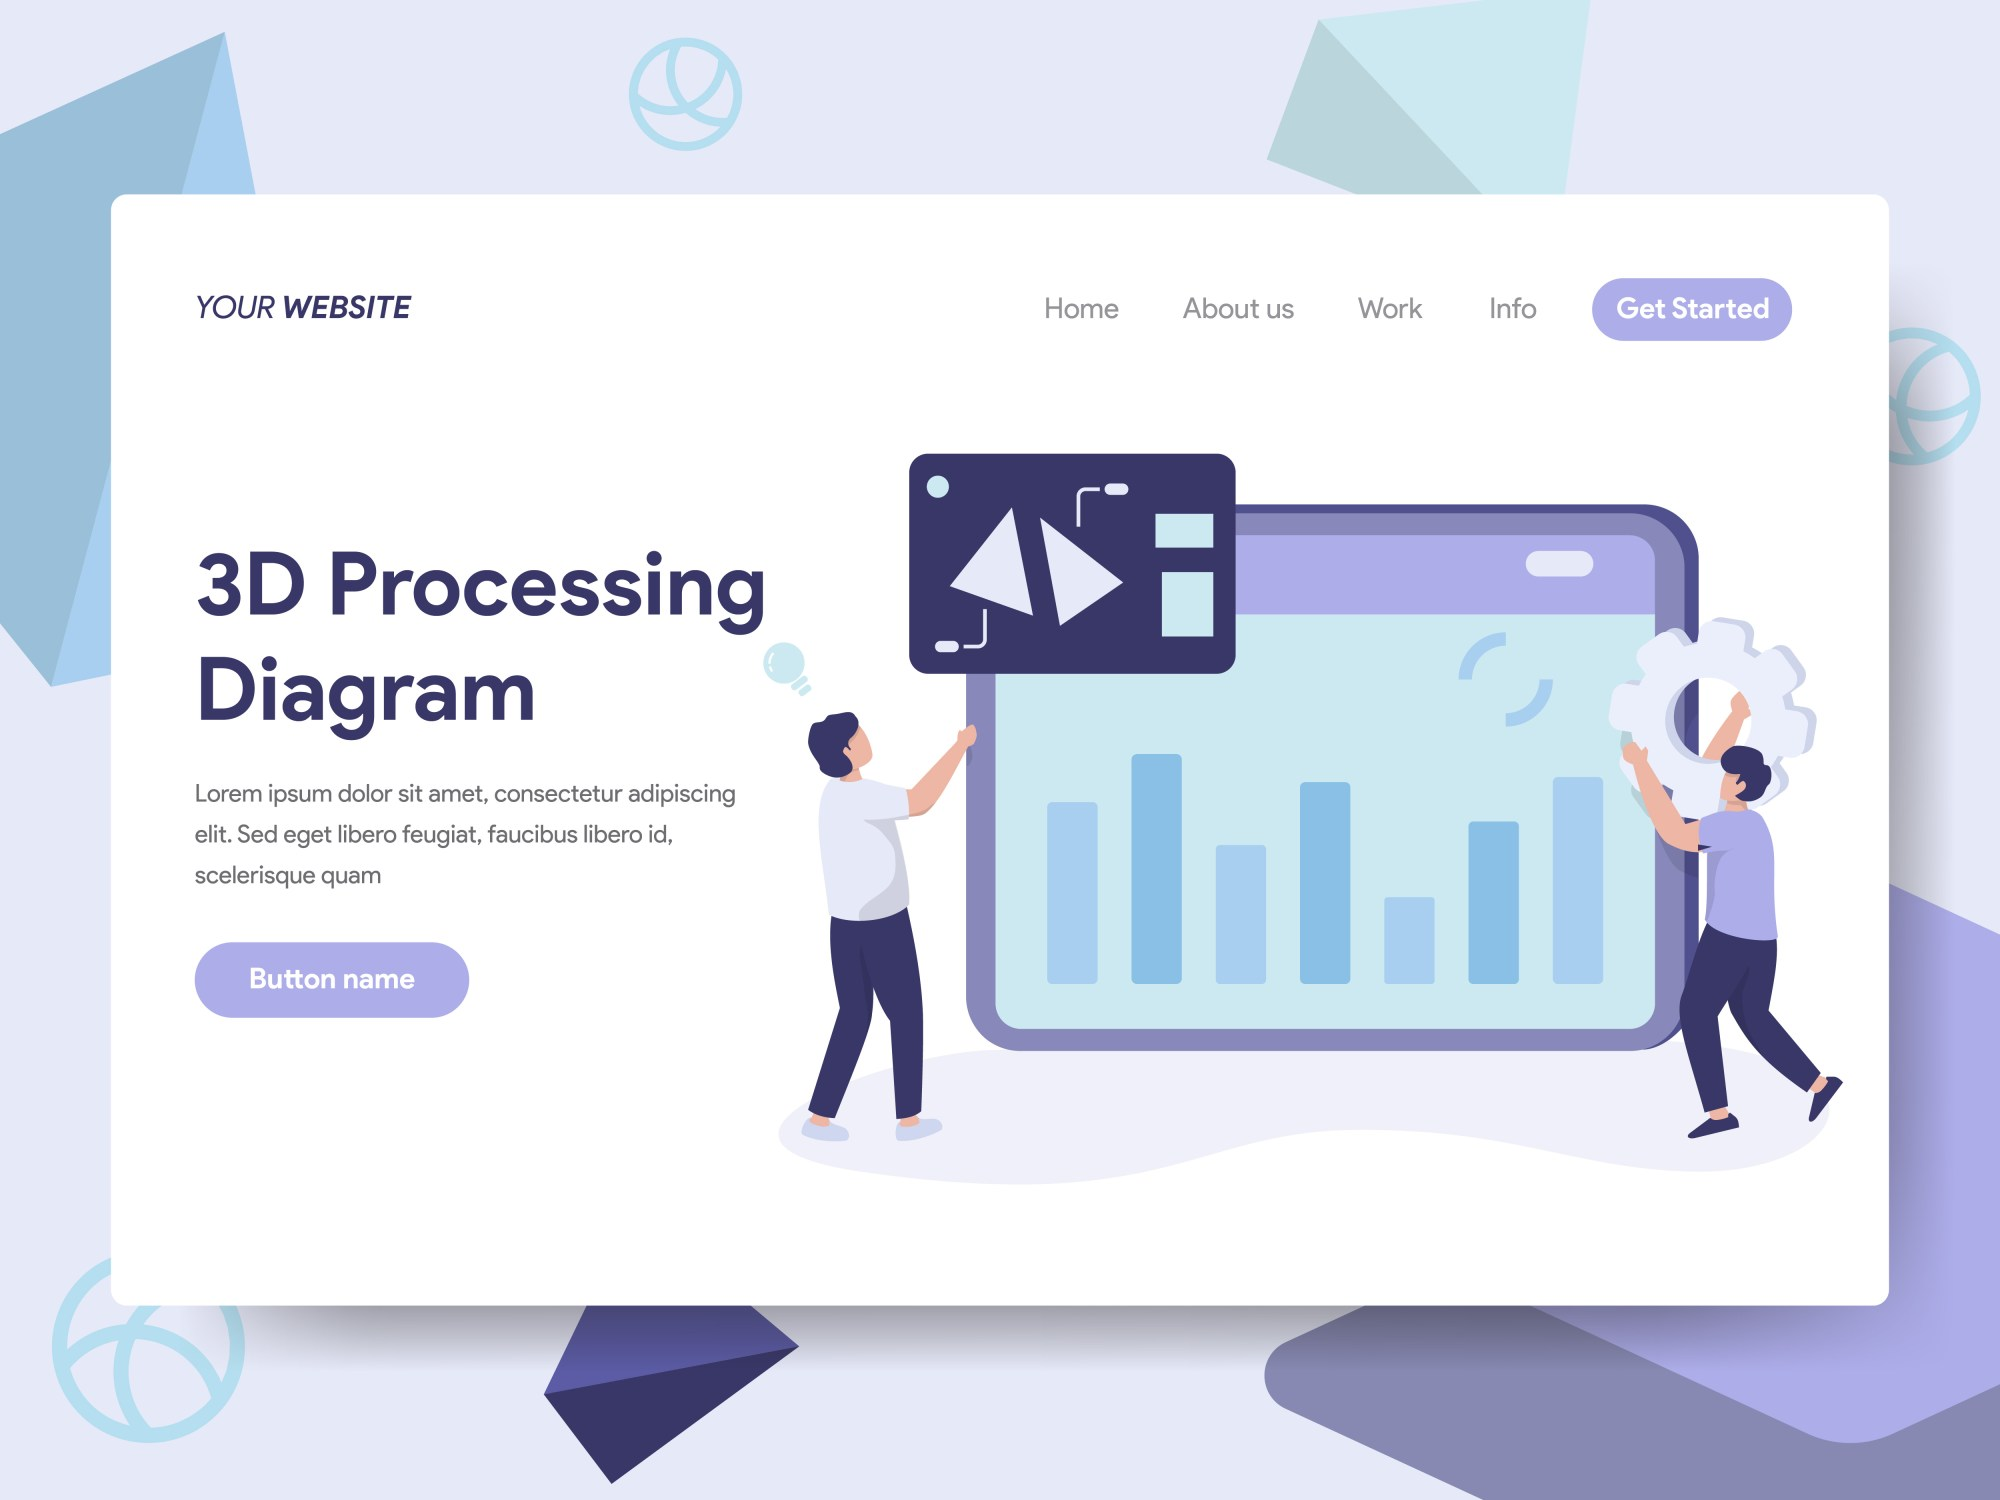 hight resolution of landing page template of 3d processing diagram illustration concept isometric flat design concept of web page design for website and mobile website